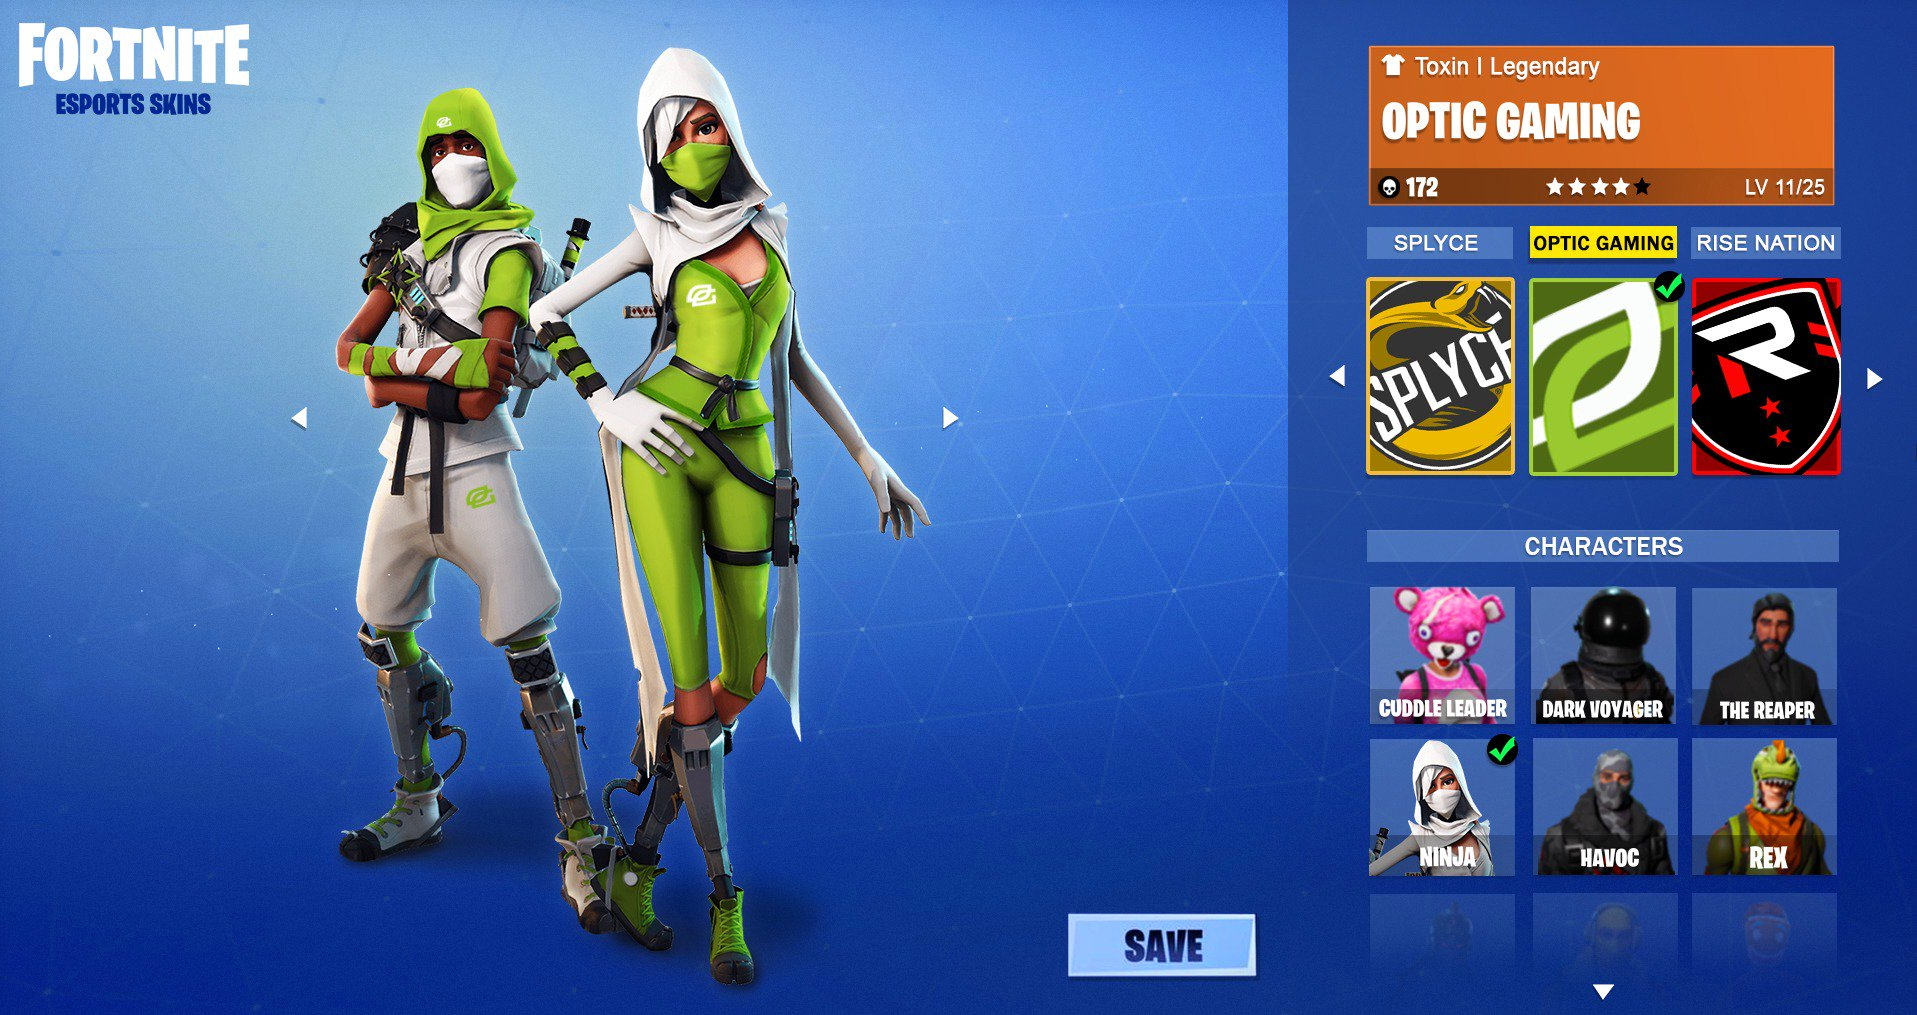 Krng Toxin On Twitter Quot Fortnite Esports Skins For